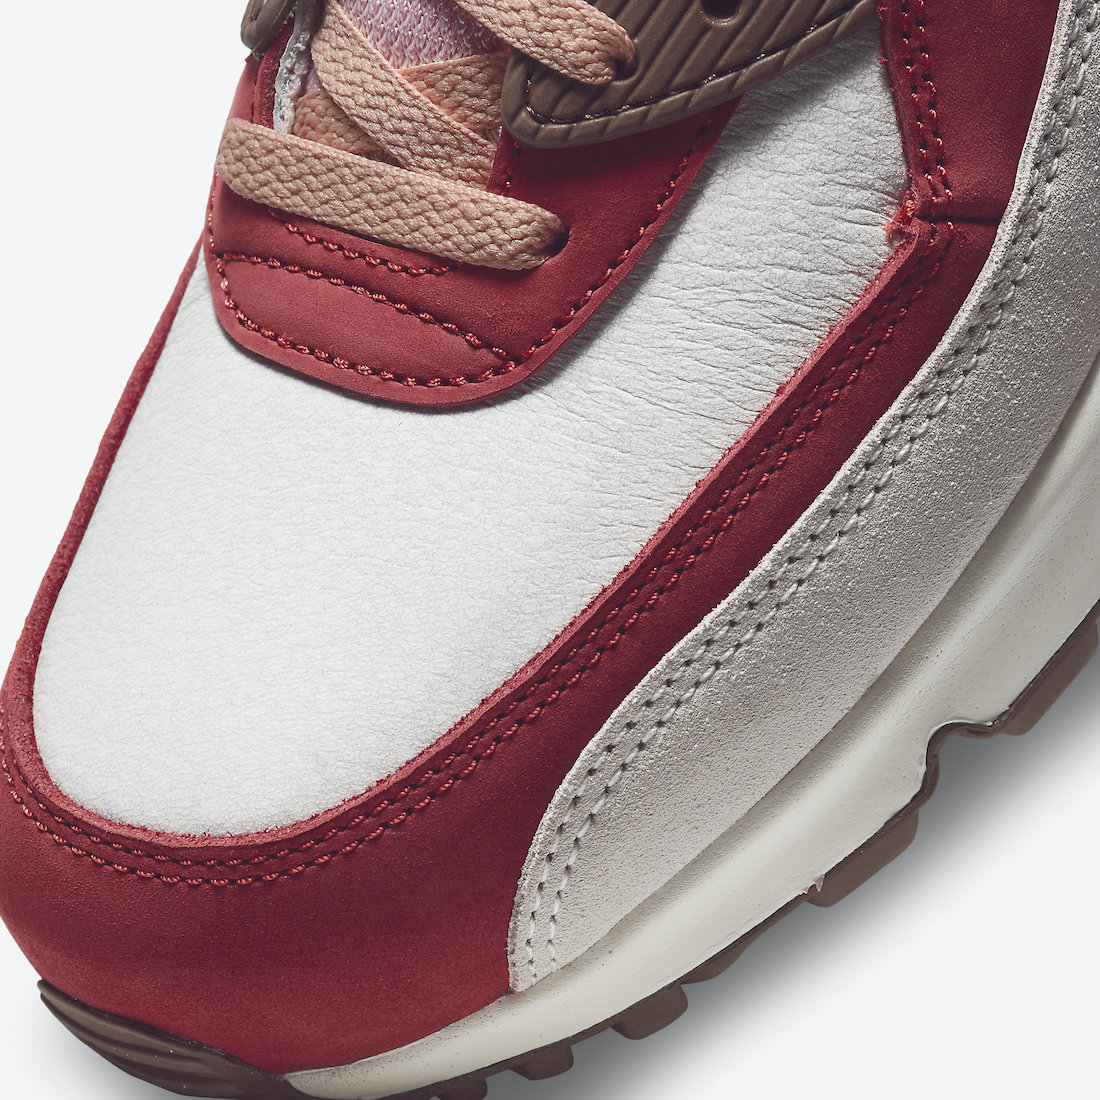 Nike-Air-Max-90-Bacon-CU1816-100-Release-Date-Price-6